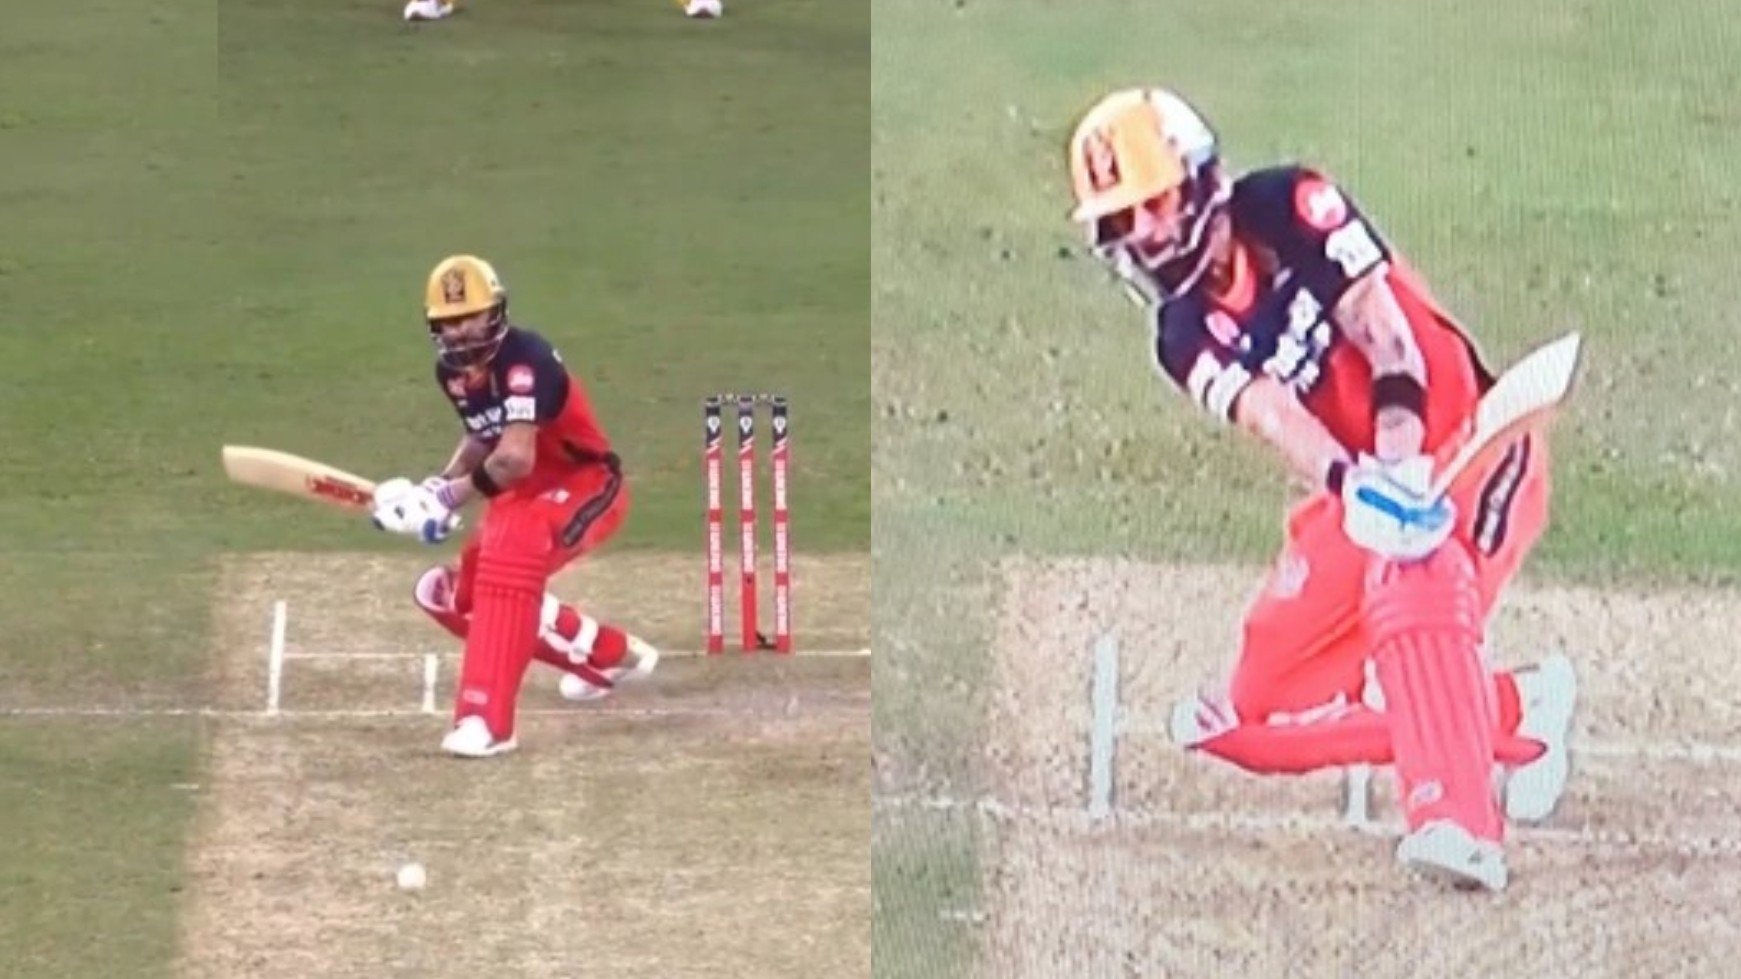 IPL 2020: WATCH- Virat Kohli's amazing 360° scoop shot garners attention